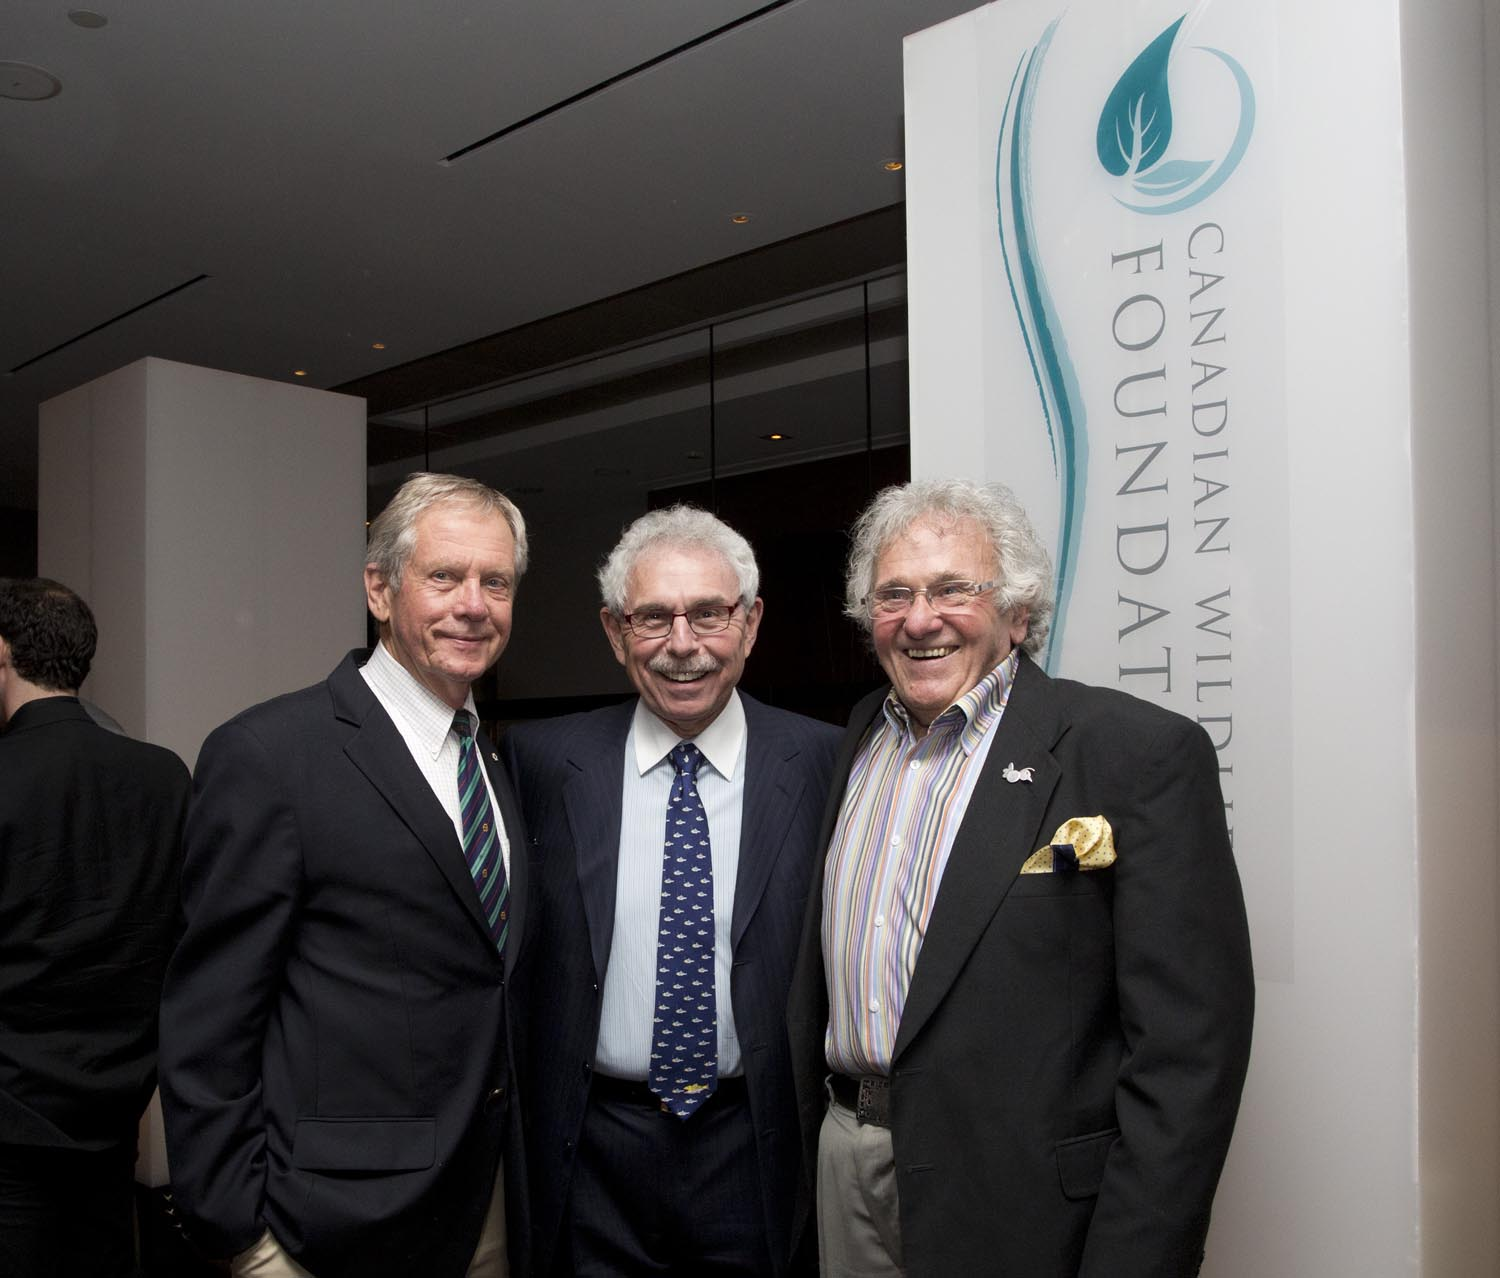 Mr. Robert Bateman, Dr. Bernie Gosevitz and Mr. Andy Donato